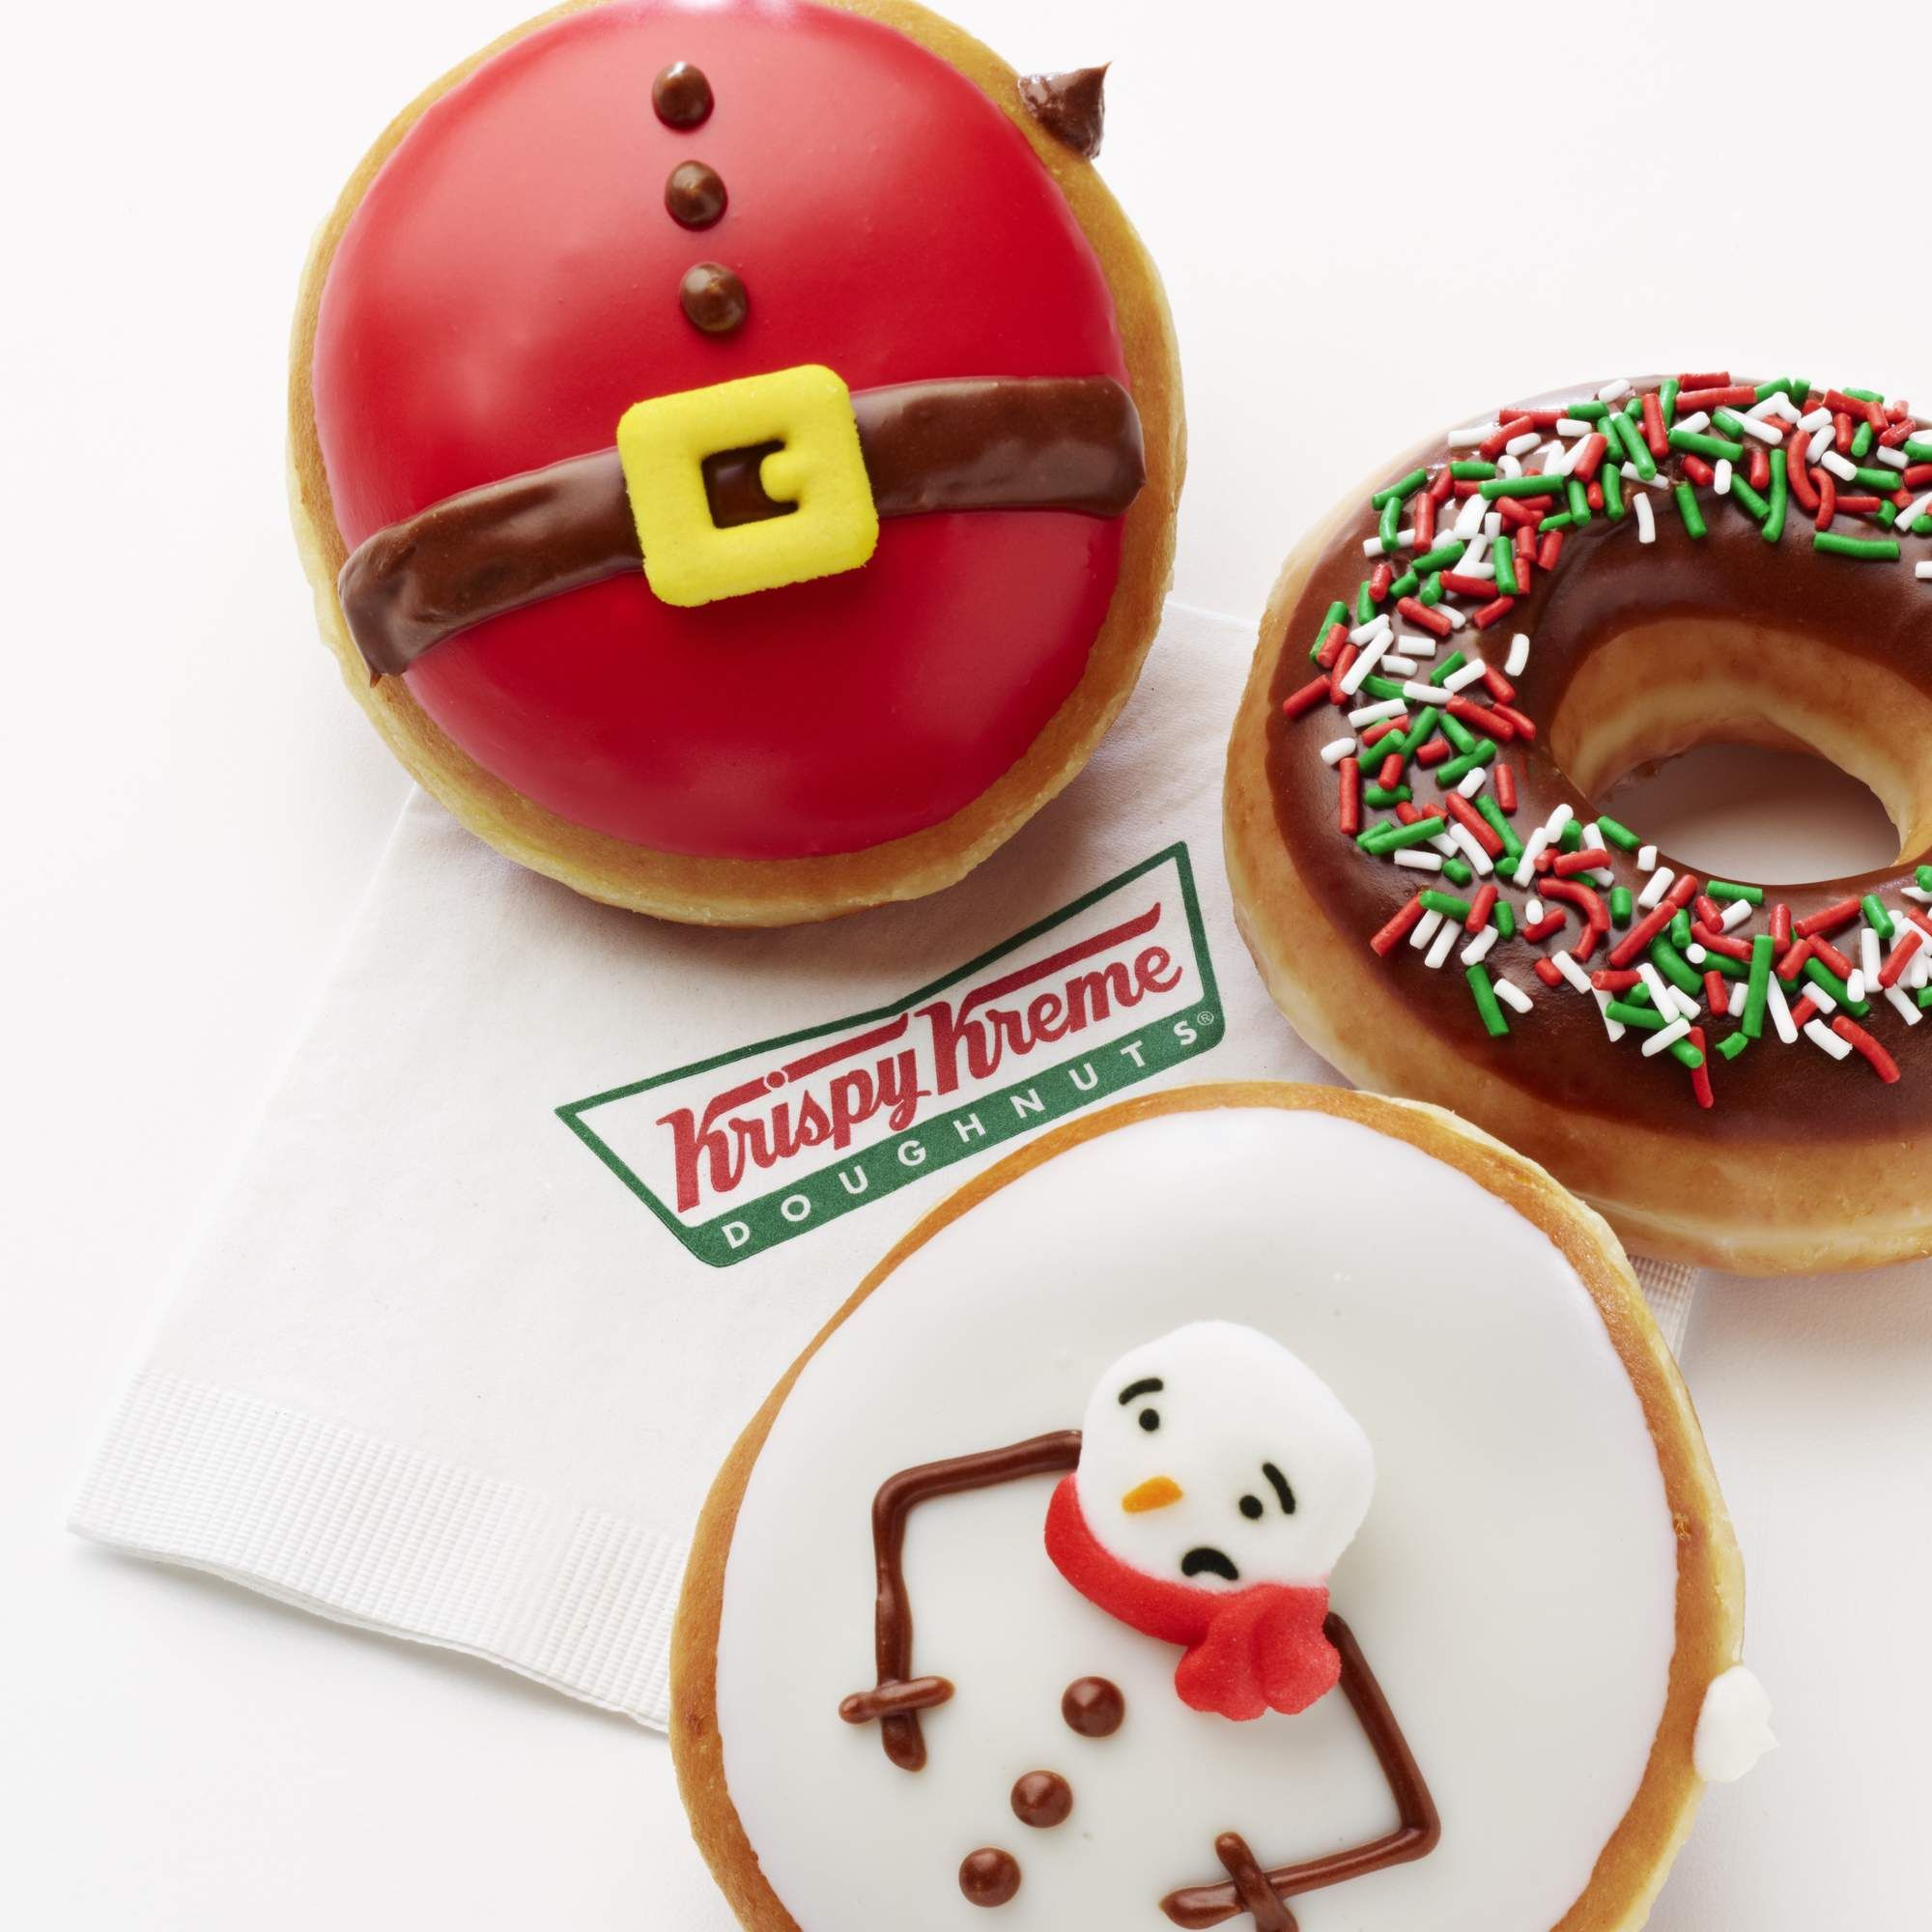 Krispy Kreme S New Holiday Donut Comes With Hot Cocoa Filling Christmas Donuts Holiday Donuts Krispy Kreme